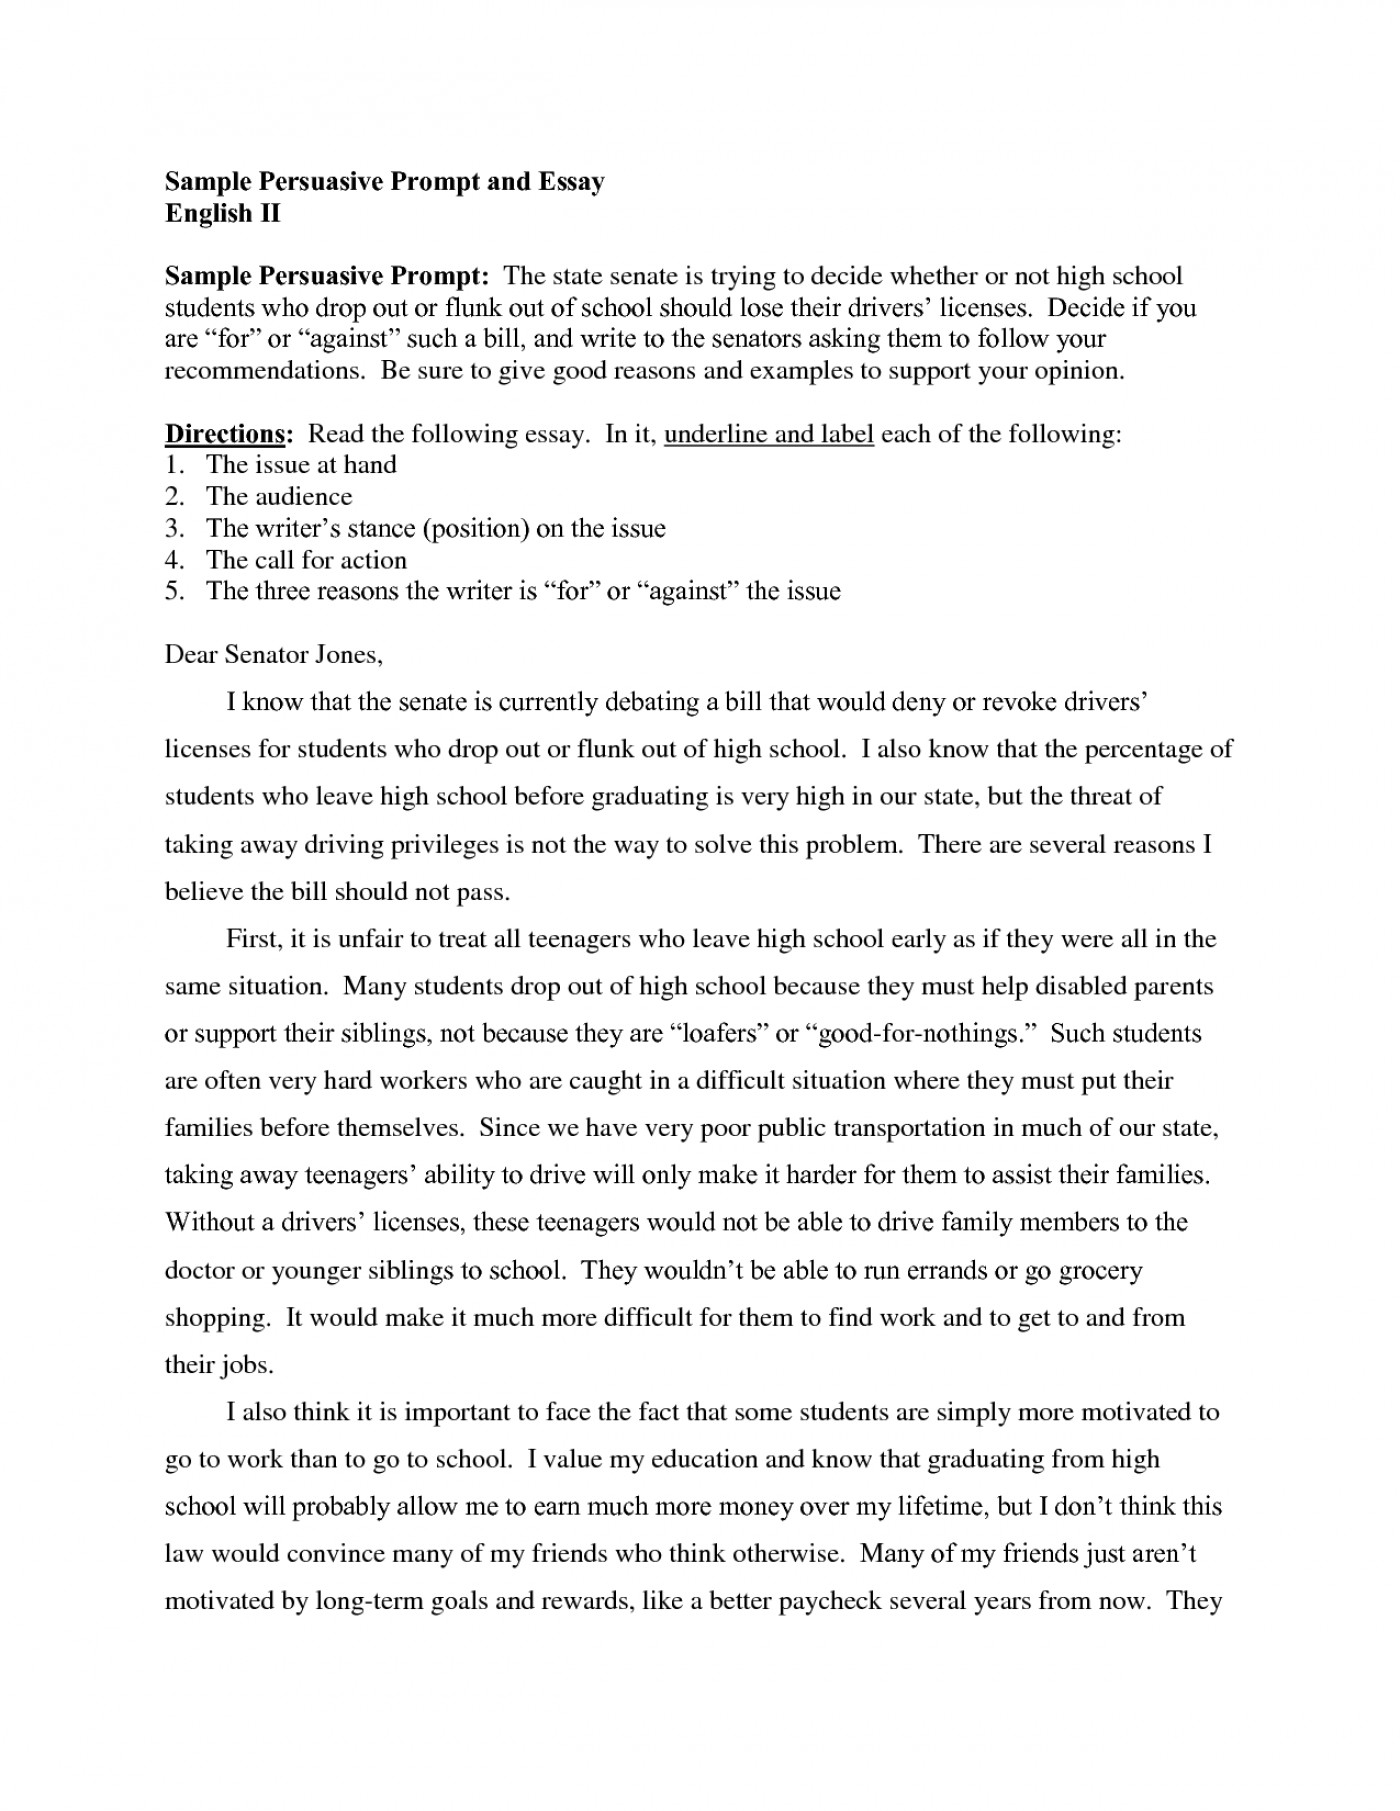 013 Research Paper Easy Topic Persuasive Essay Topics For High School Sample Ideas Highschool Students Good Prompt Funny Fun List Of Seniors Writing English Sensational Biology Science 1400